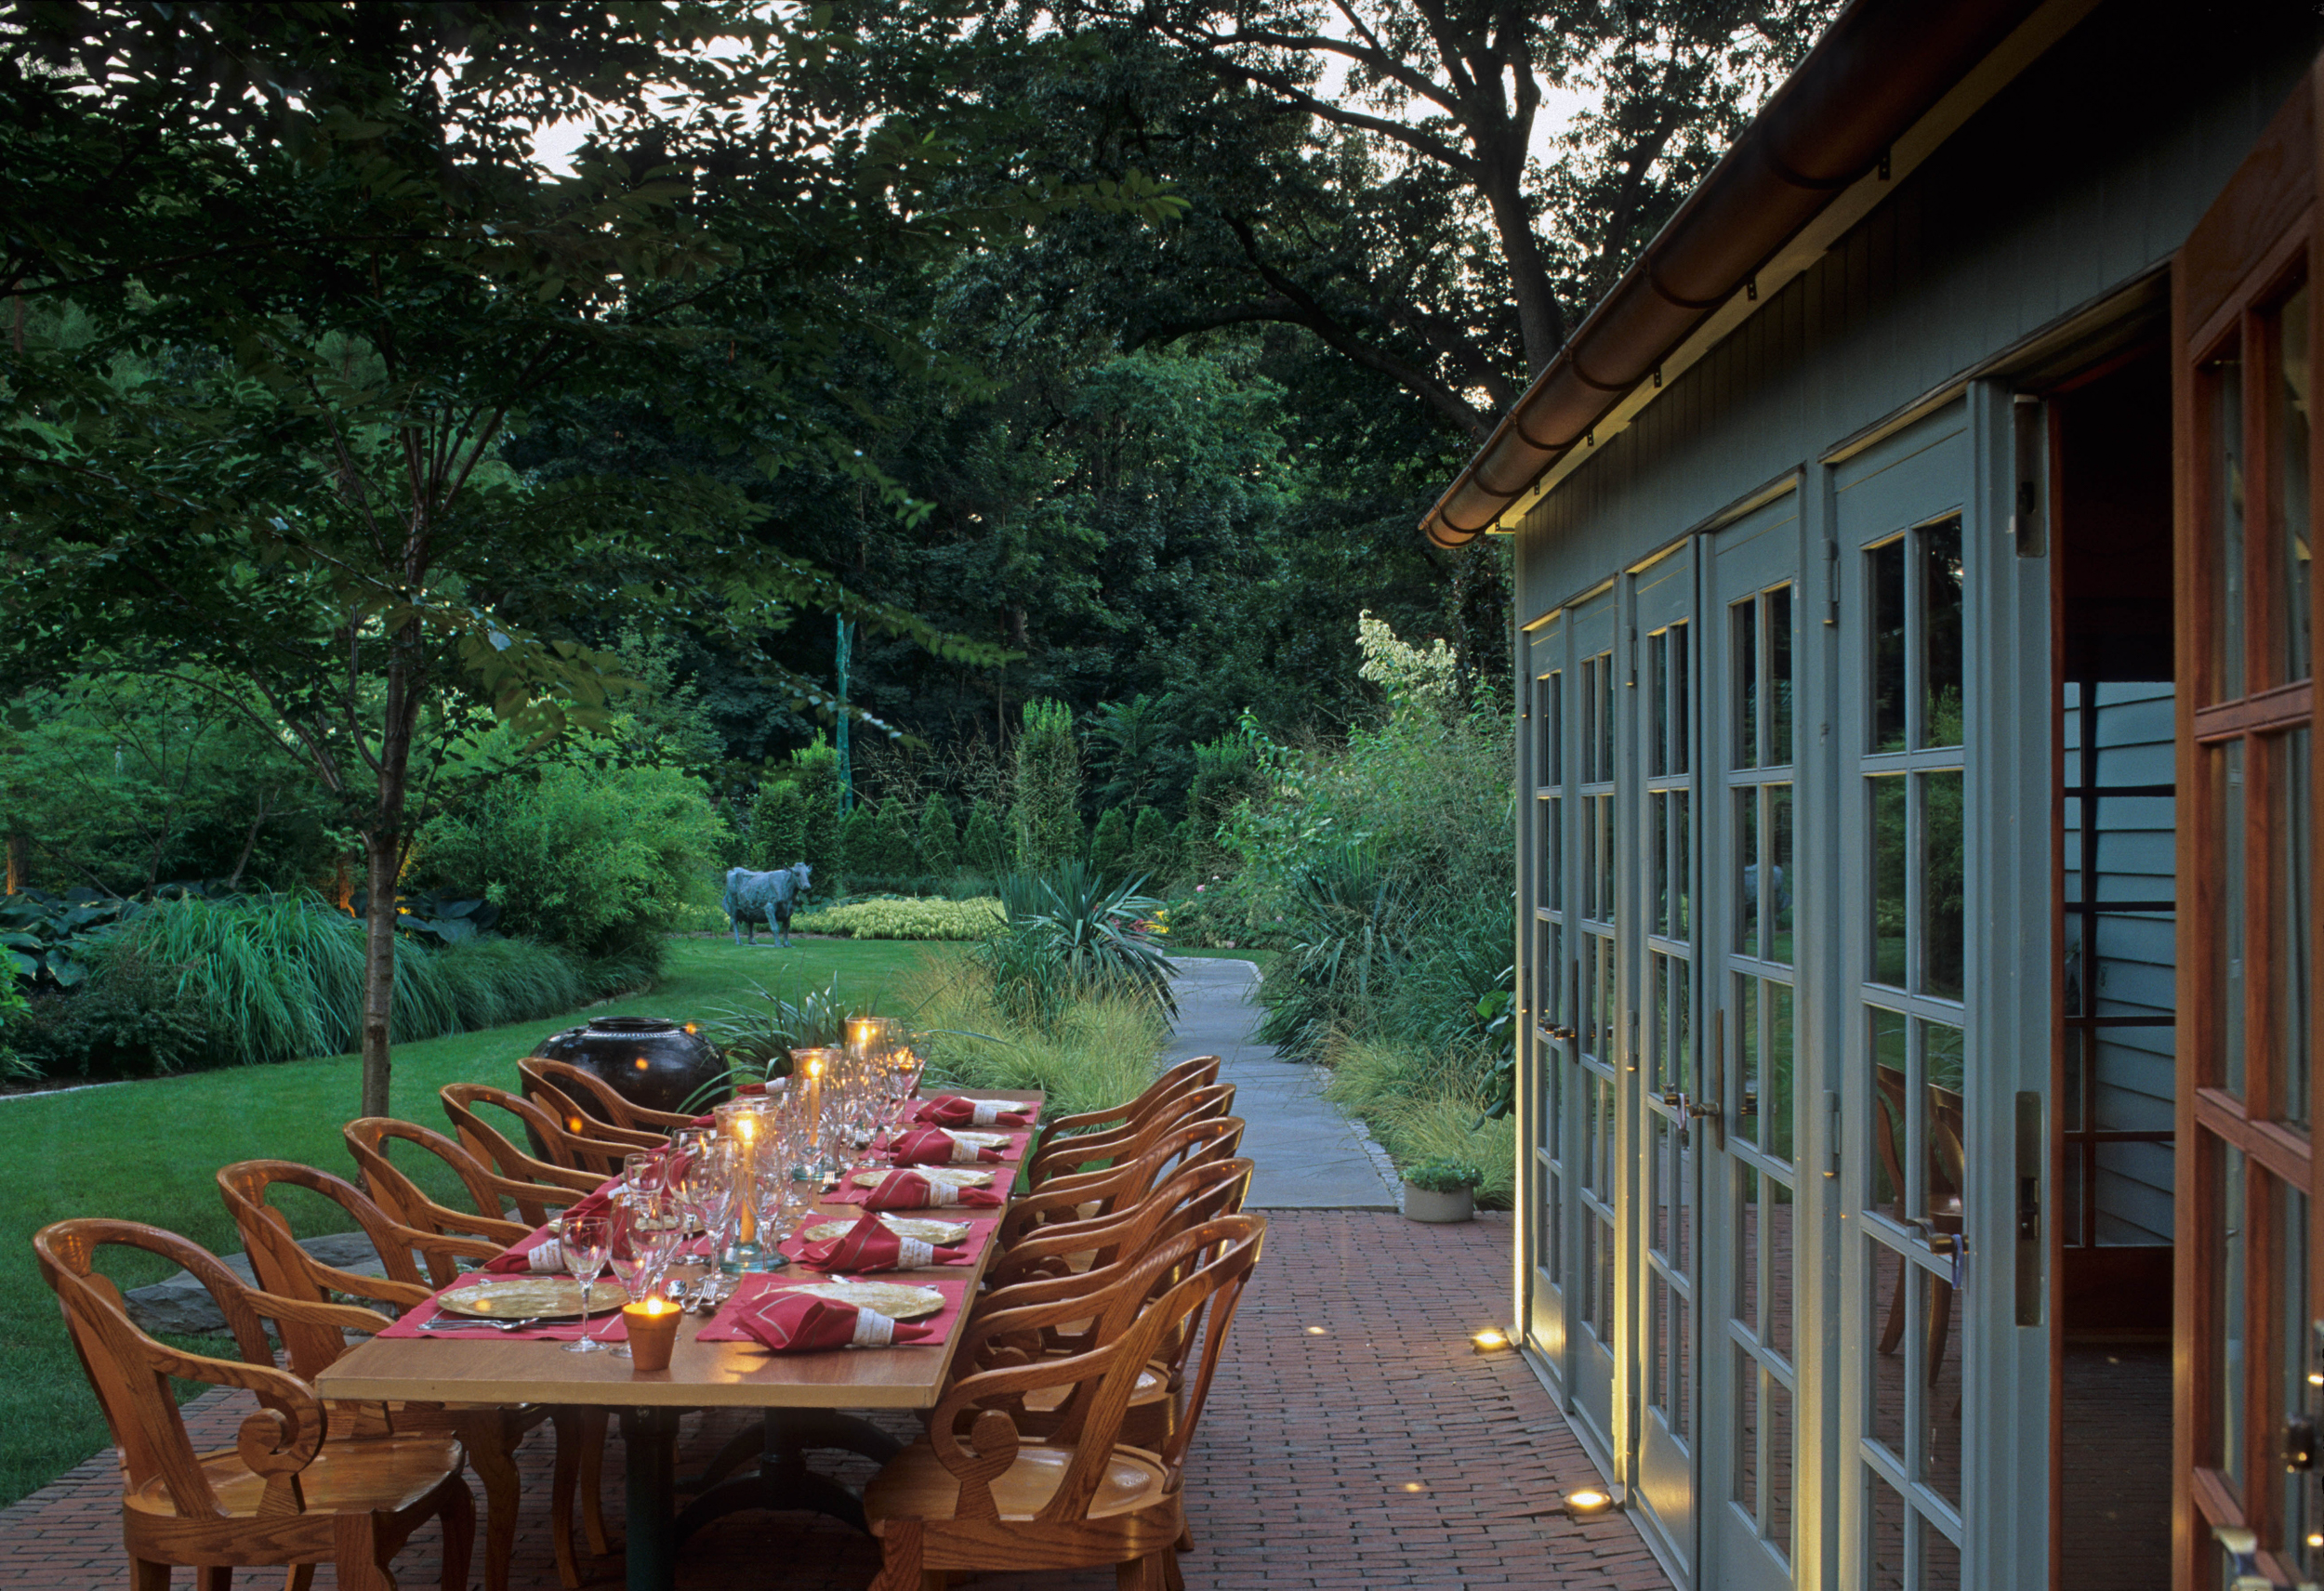 Outdoor dining table on patio